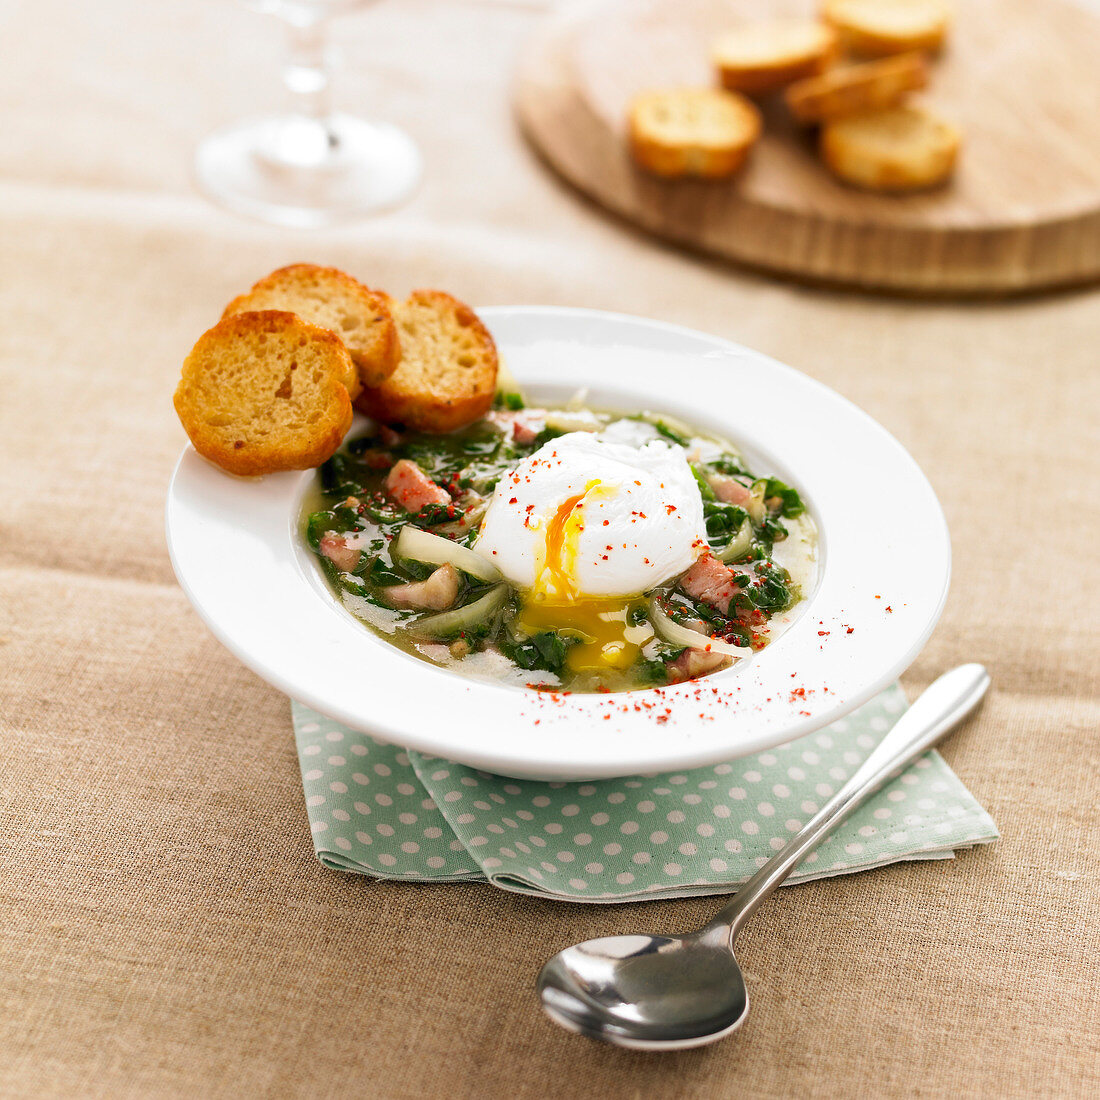 Sorrel Tourain with a soft-boiled egg